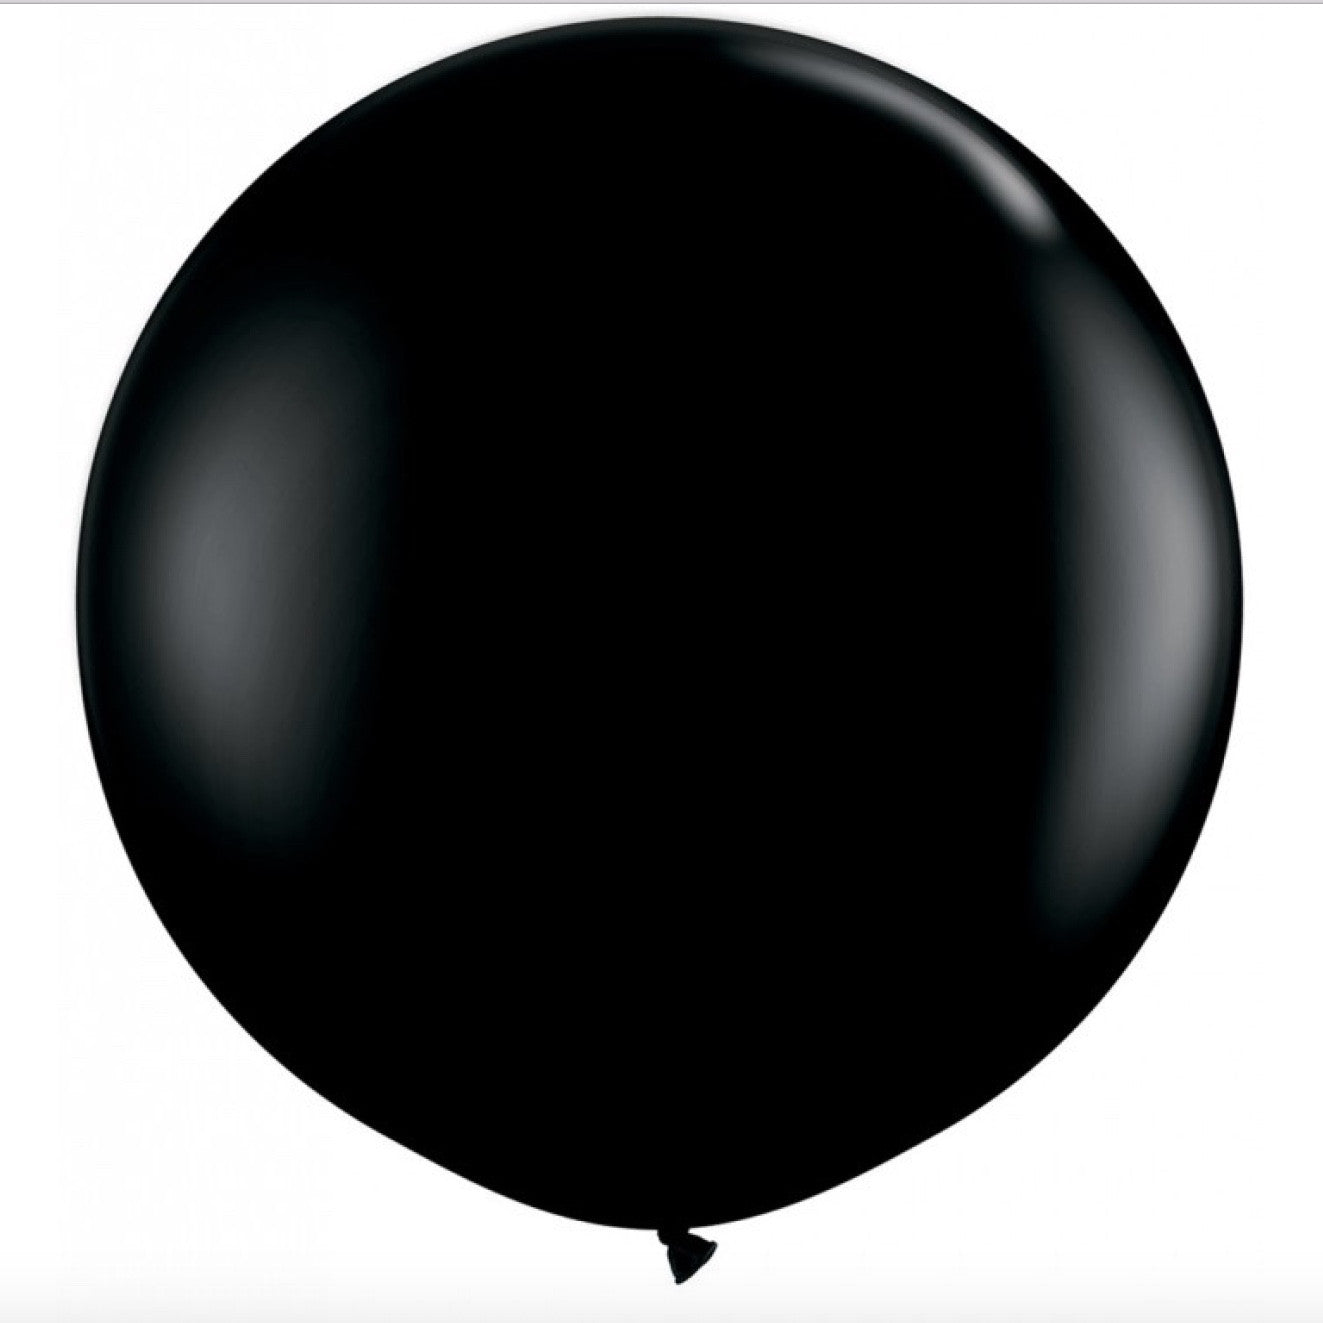 "Giant Round Balloon 36""- Onyx Black"